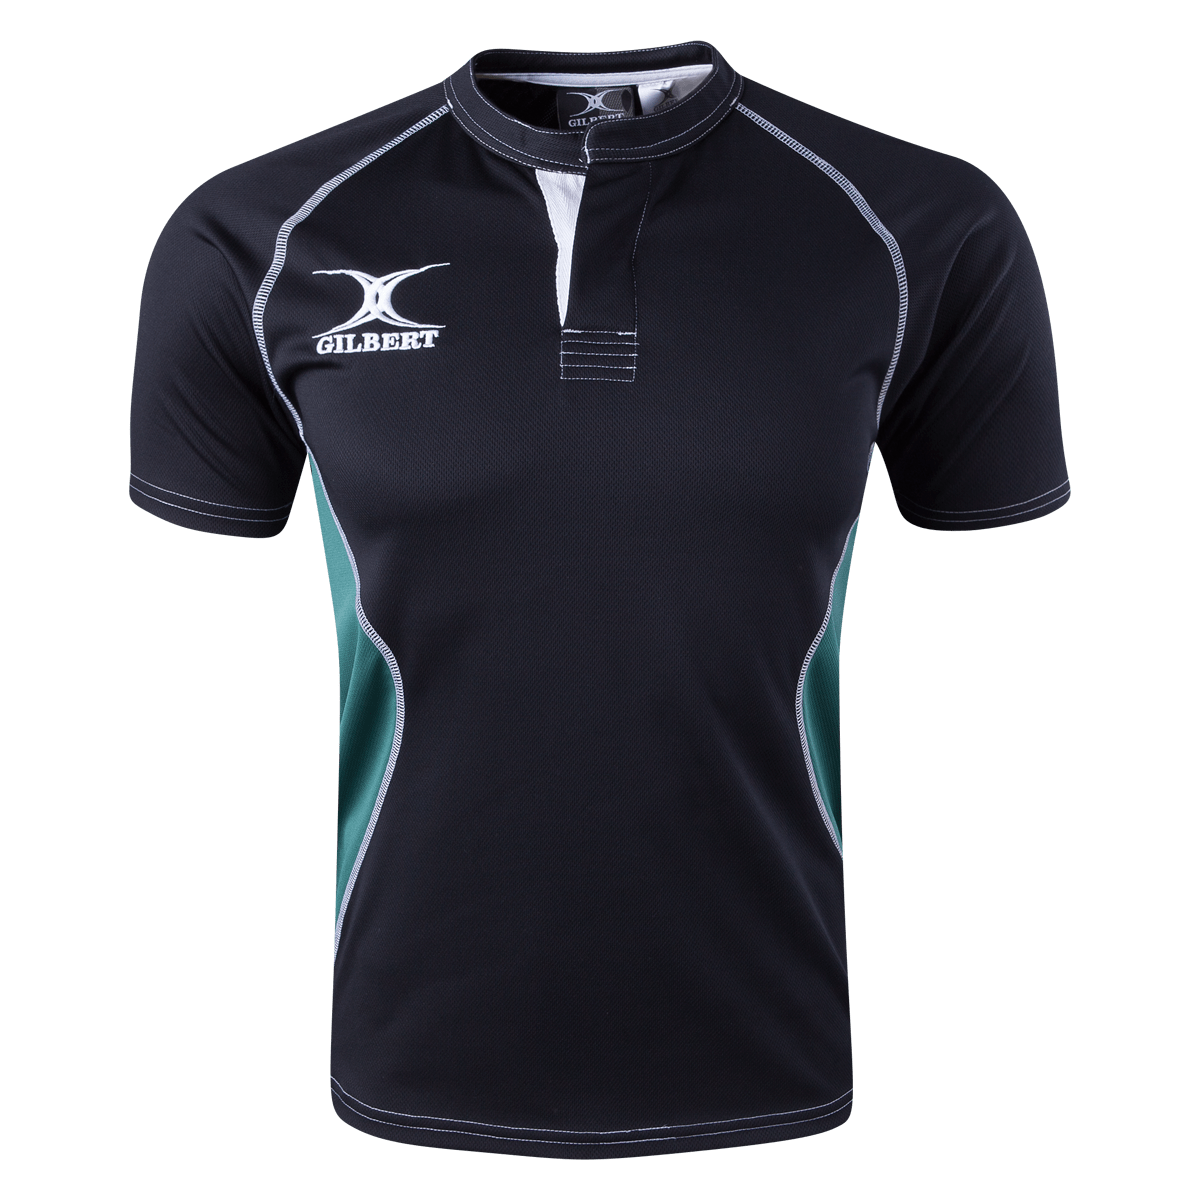 Gilbert Black/Green Xact V2 Jersey Front With White Gilbert Logo